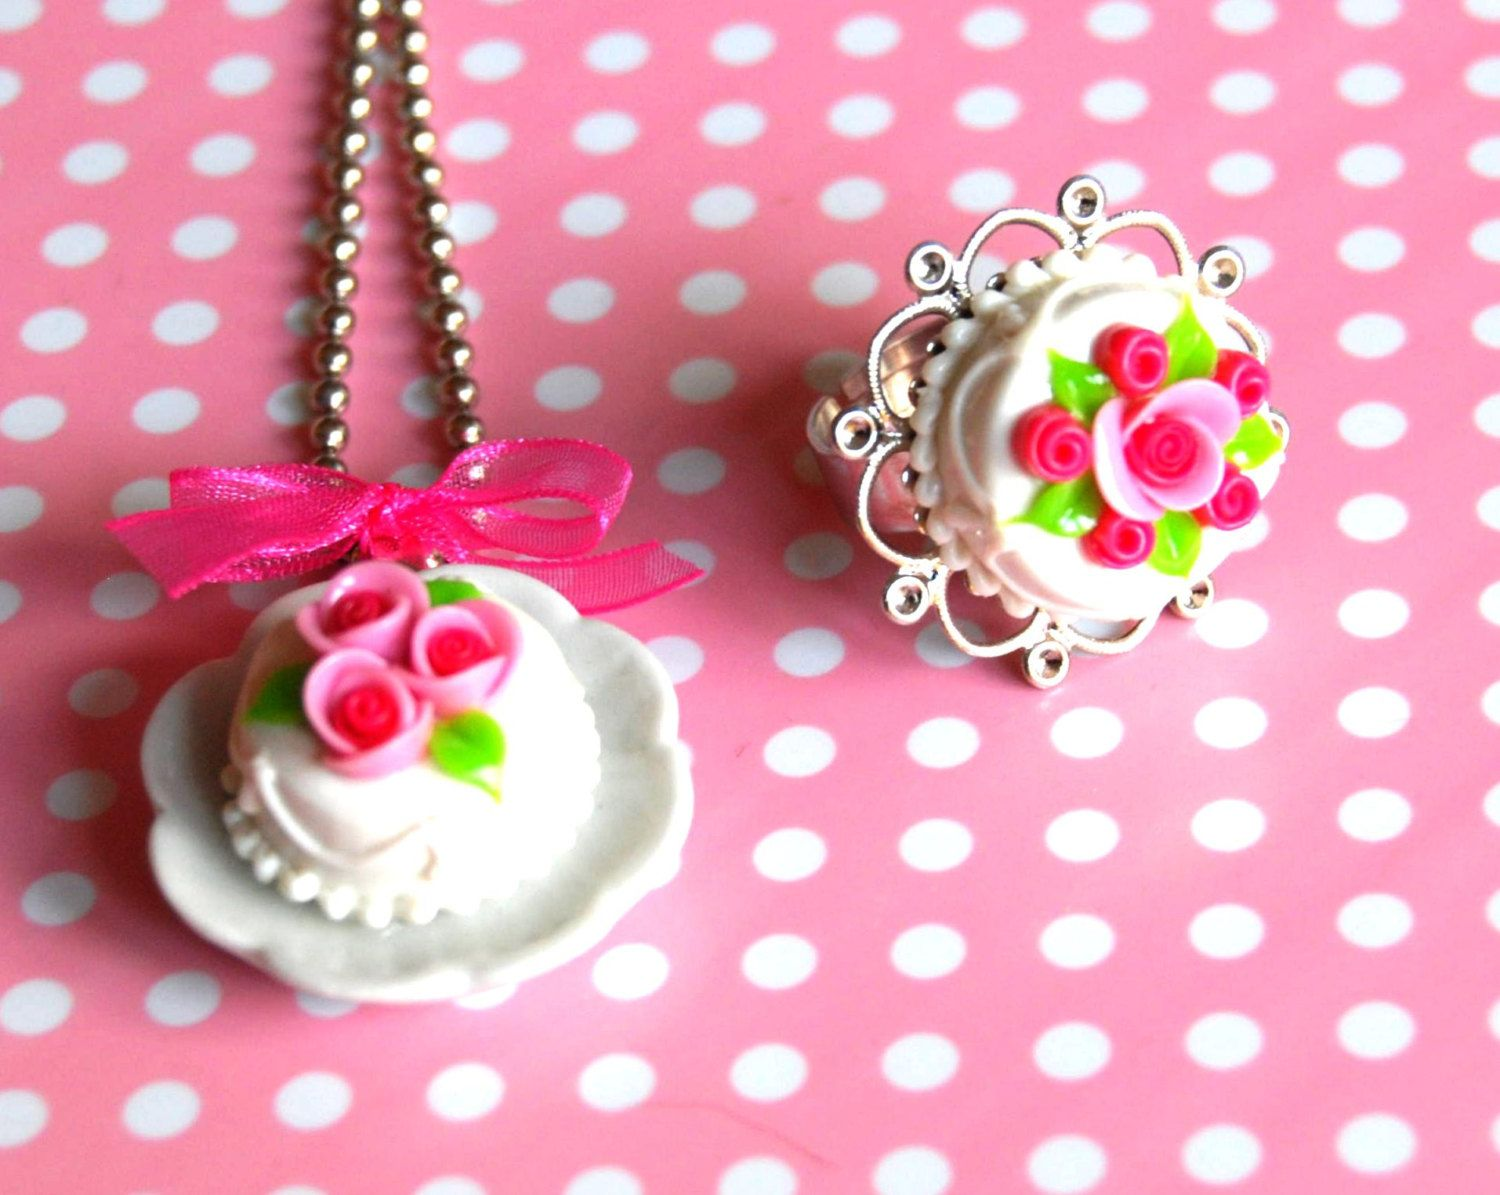 Best Friends Vanilla cake with strawberry rose sugar necklace and ring - Miniature Food Jewelry - Food Jewelry. $15.00, via Etsy.